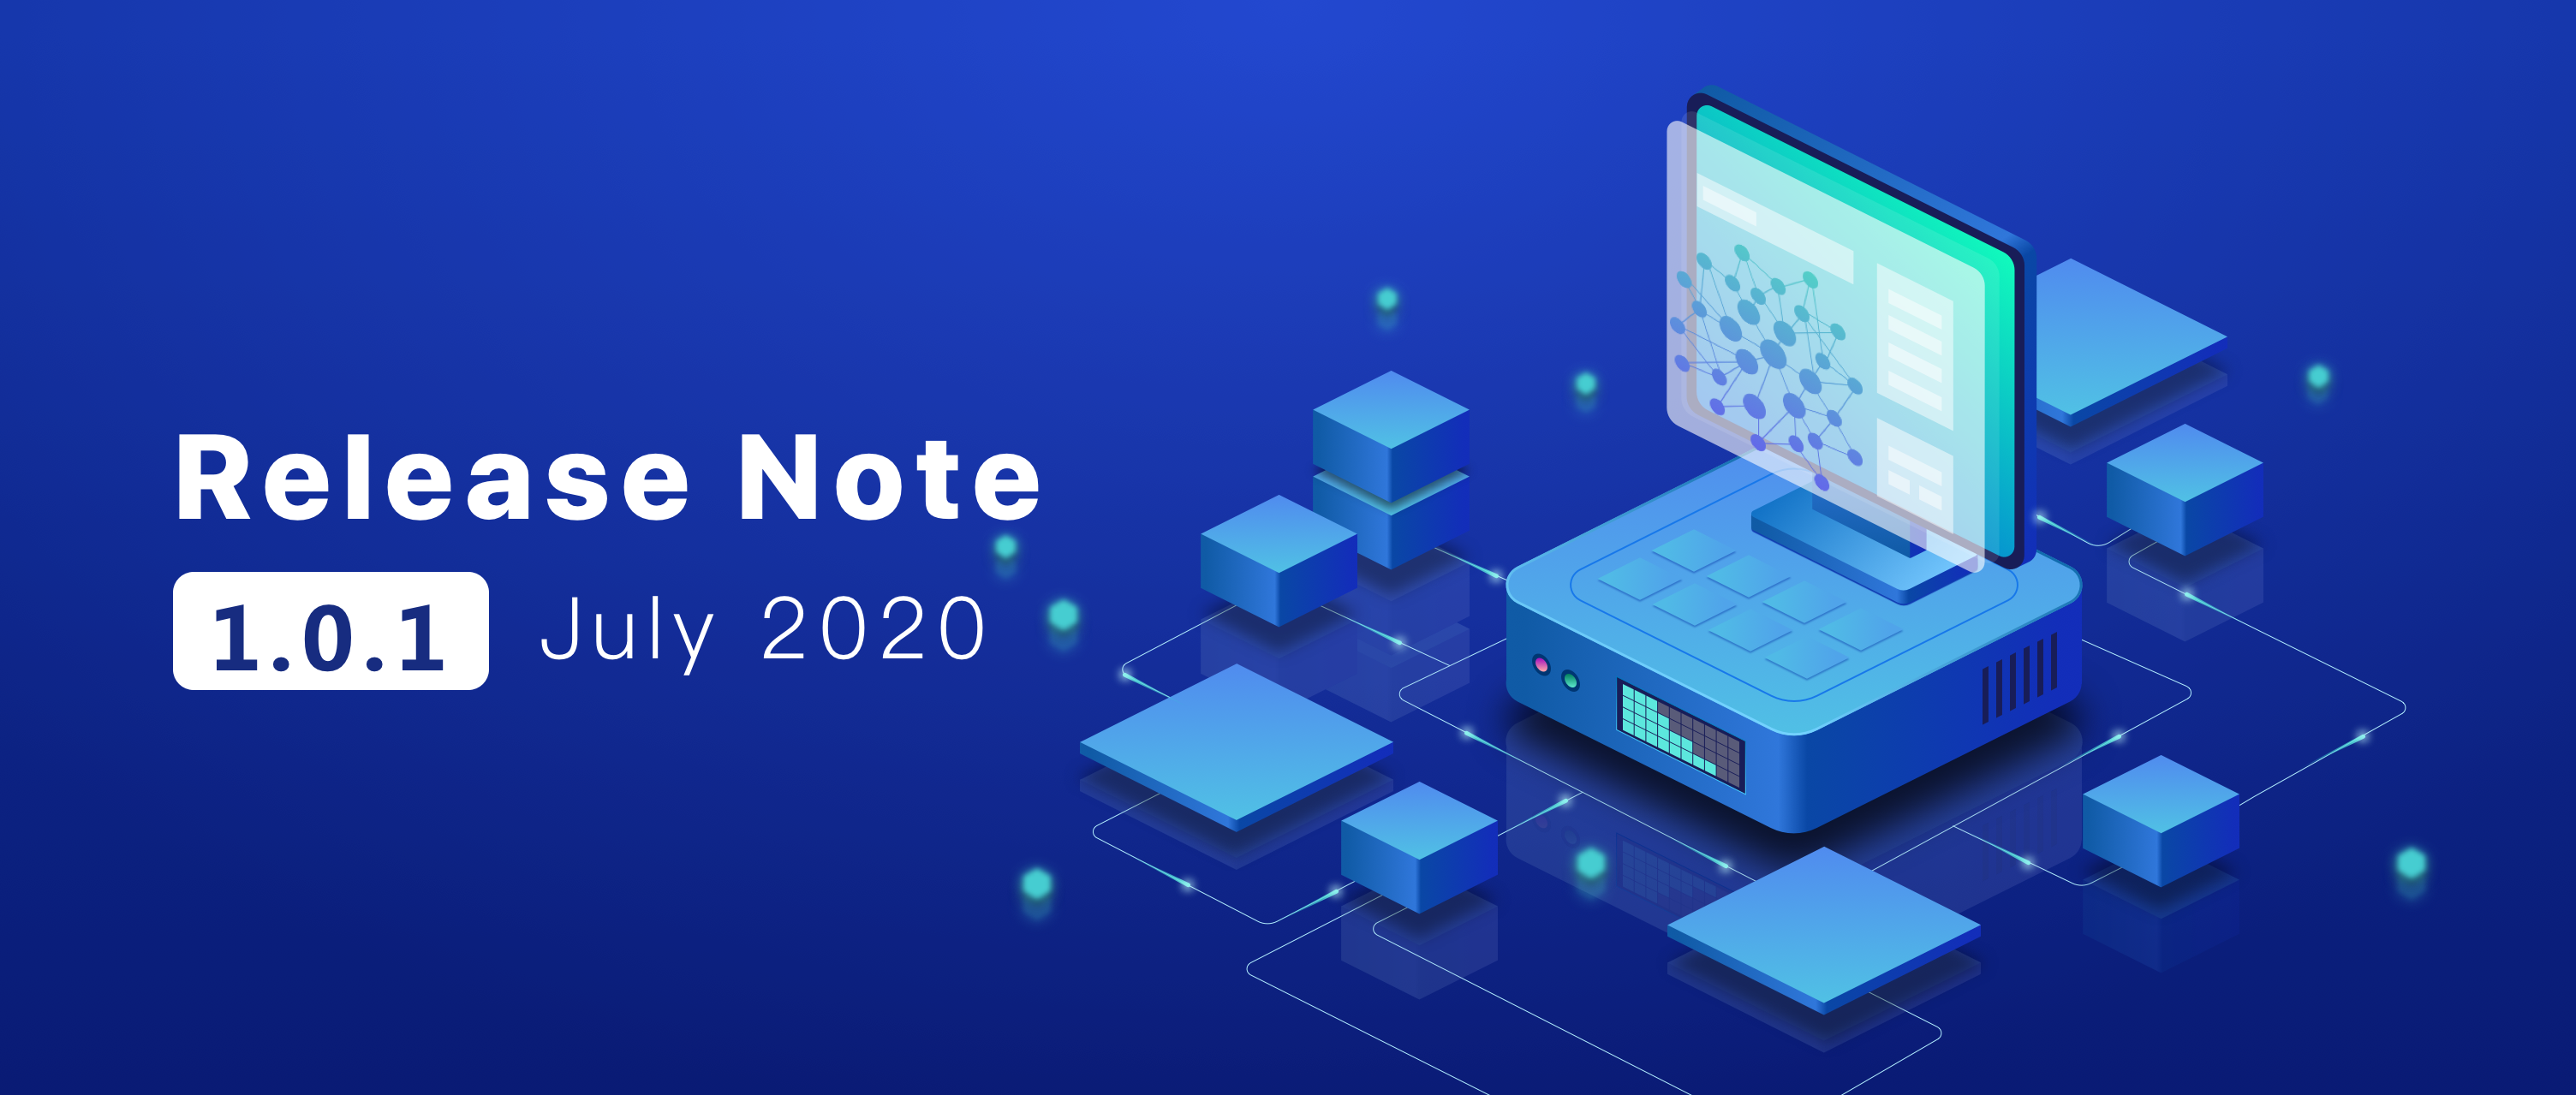 Release-note